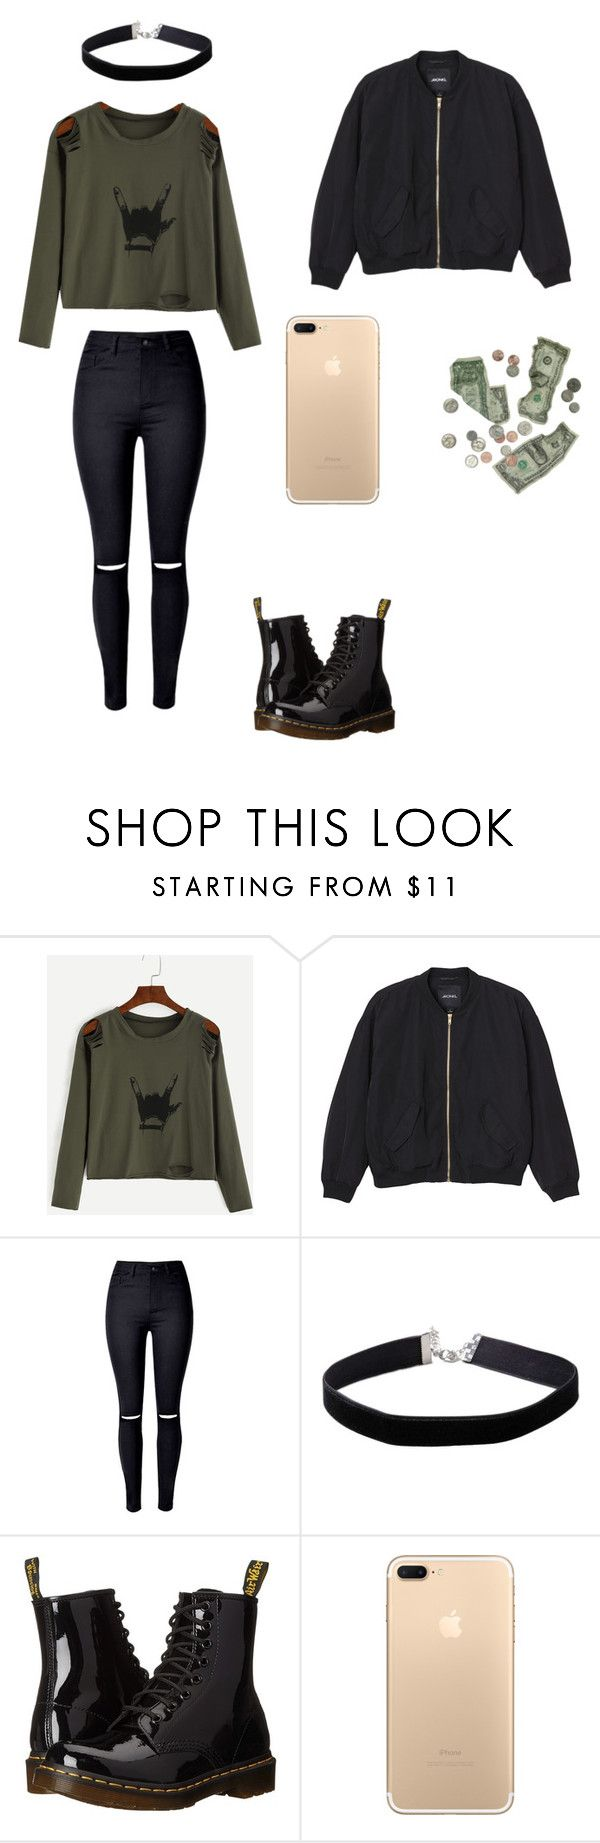 """""""Sans titre #52"""" by naolinewooz on Polyvore featuring mode, Monki, WithChic, Miss Selfridge et Dr. Martens"""